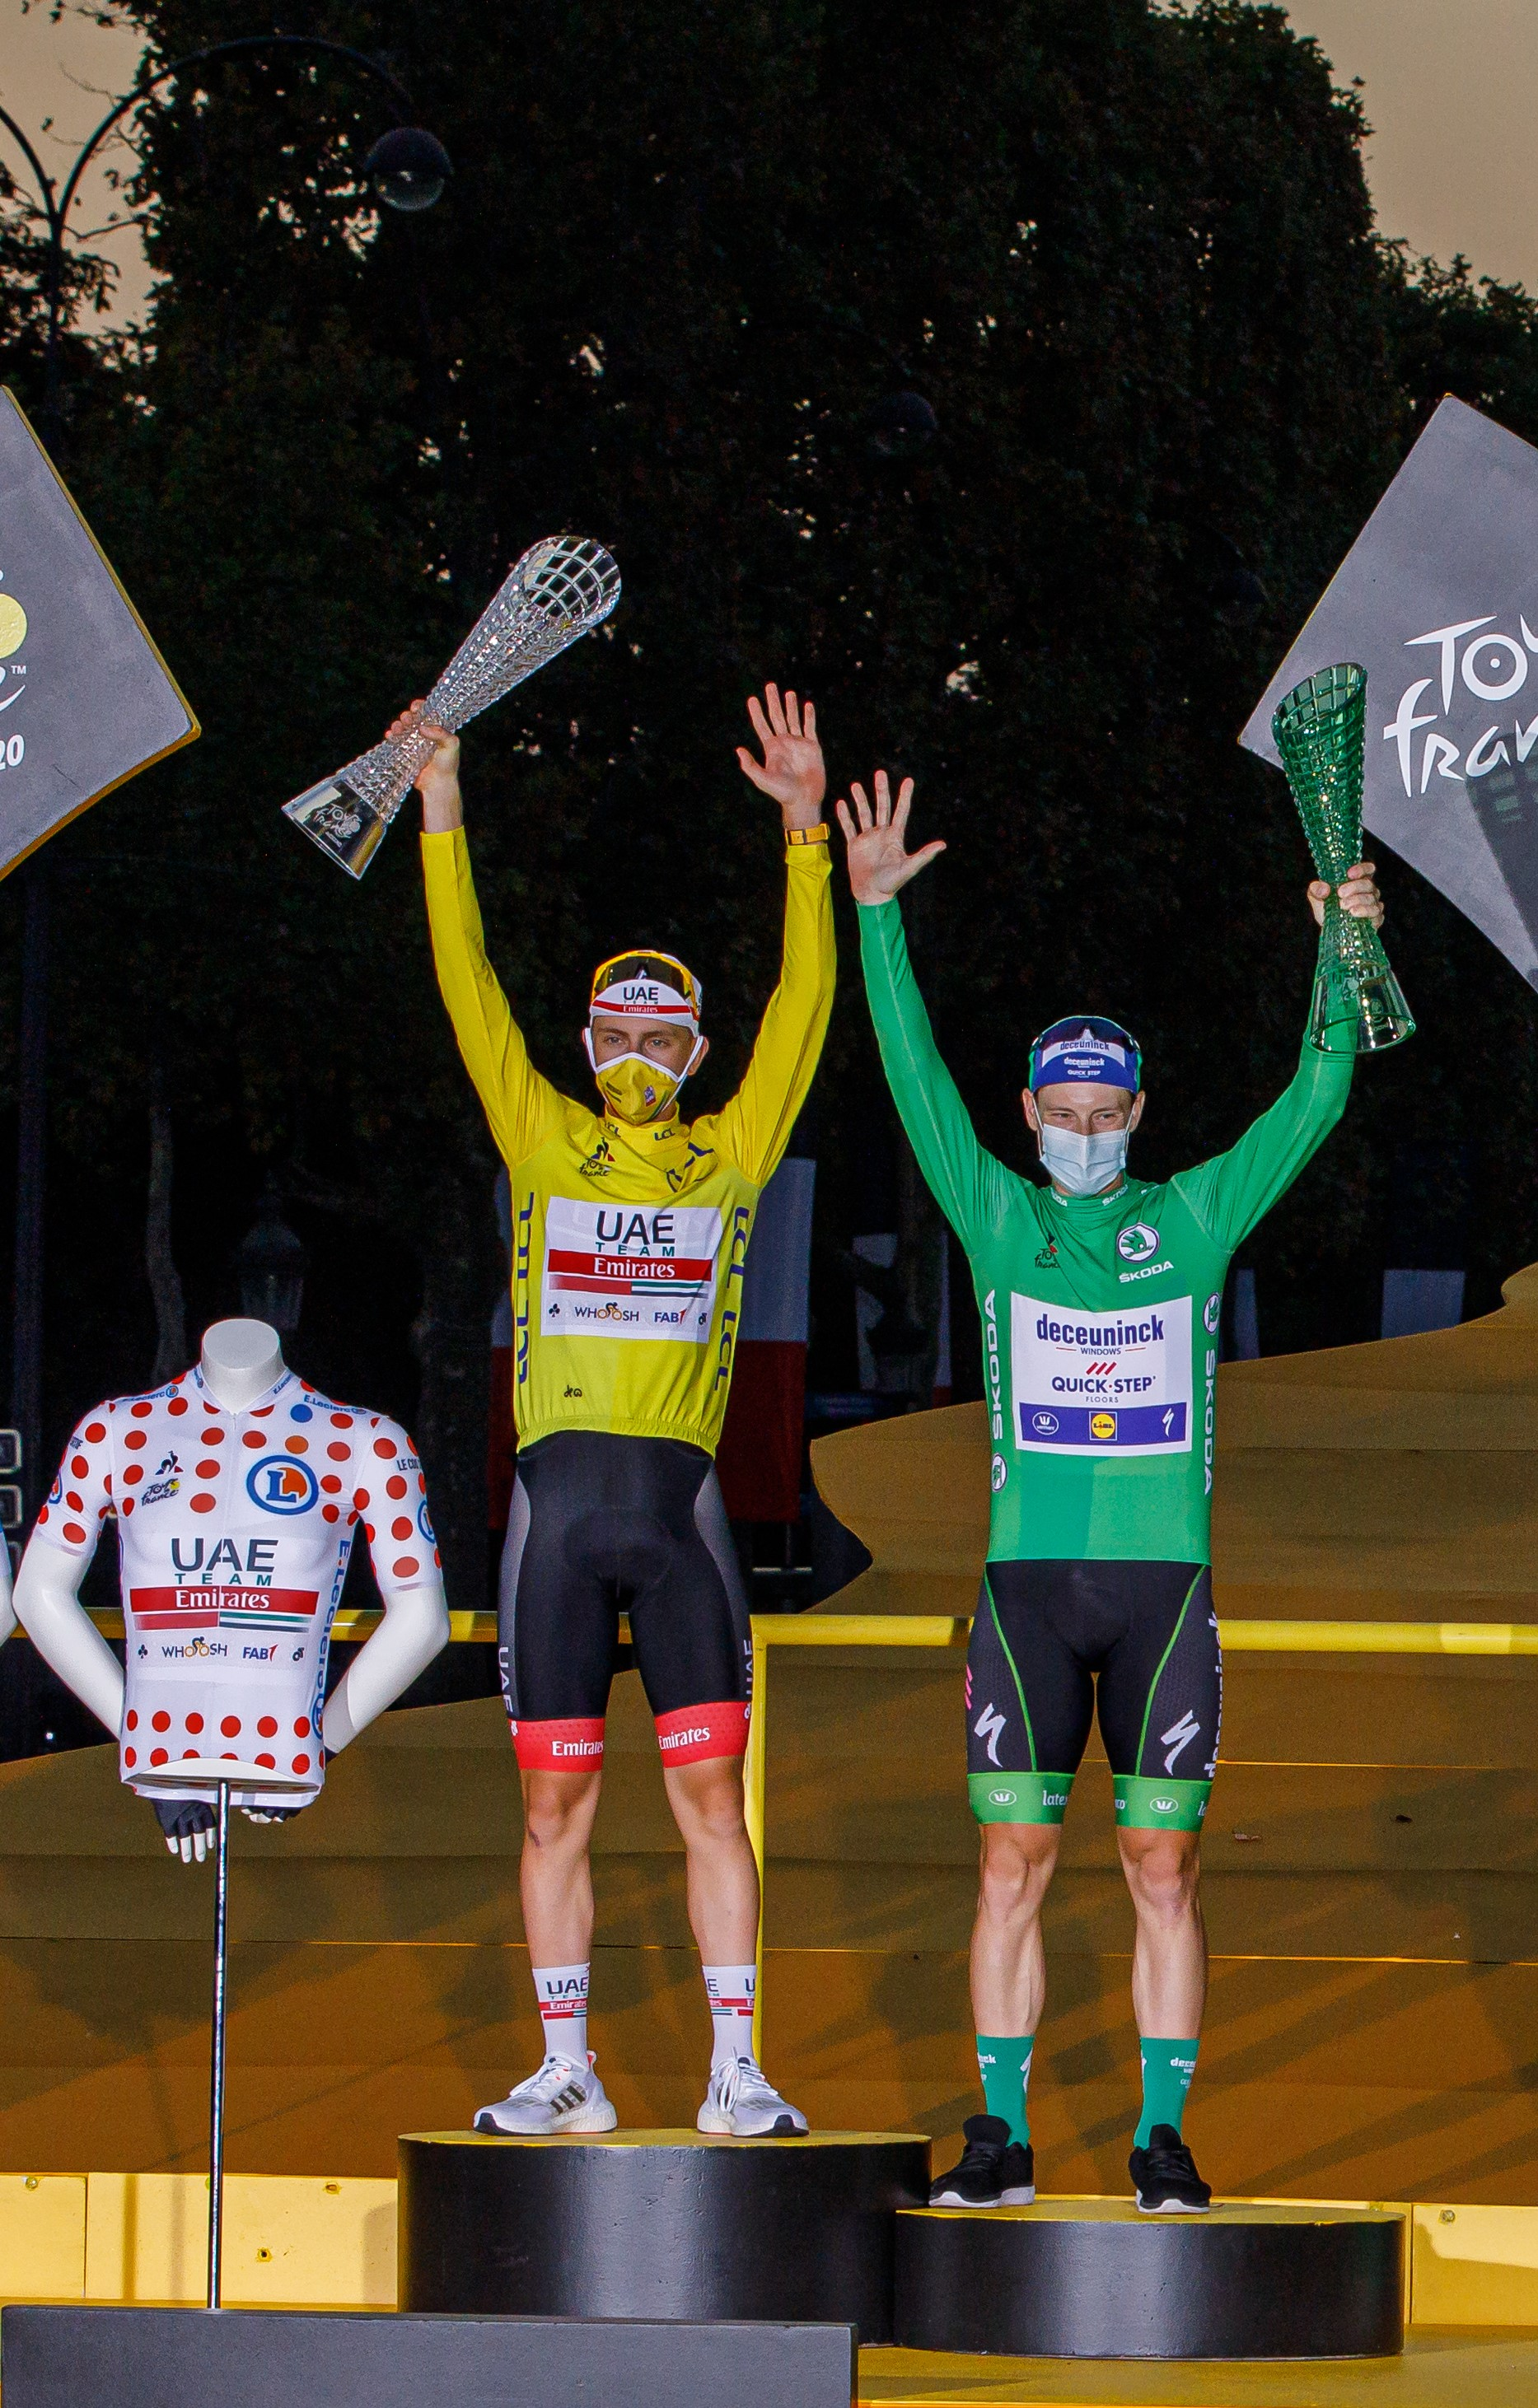 Tadej Pogacar wins the 107th Tour de France and receives crystal glass trophy from SKODA Design - Image 3